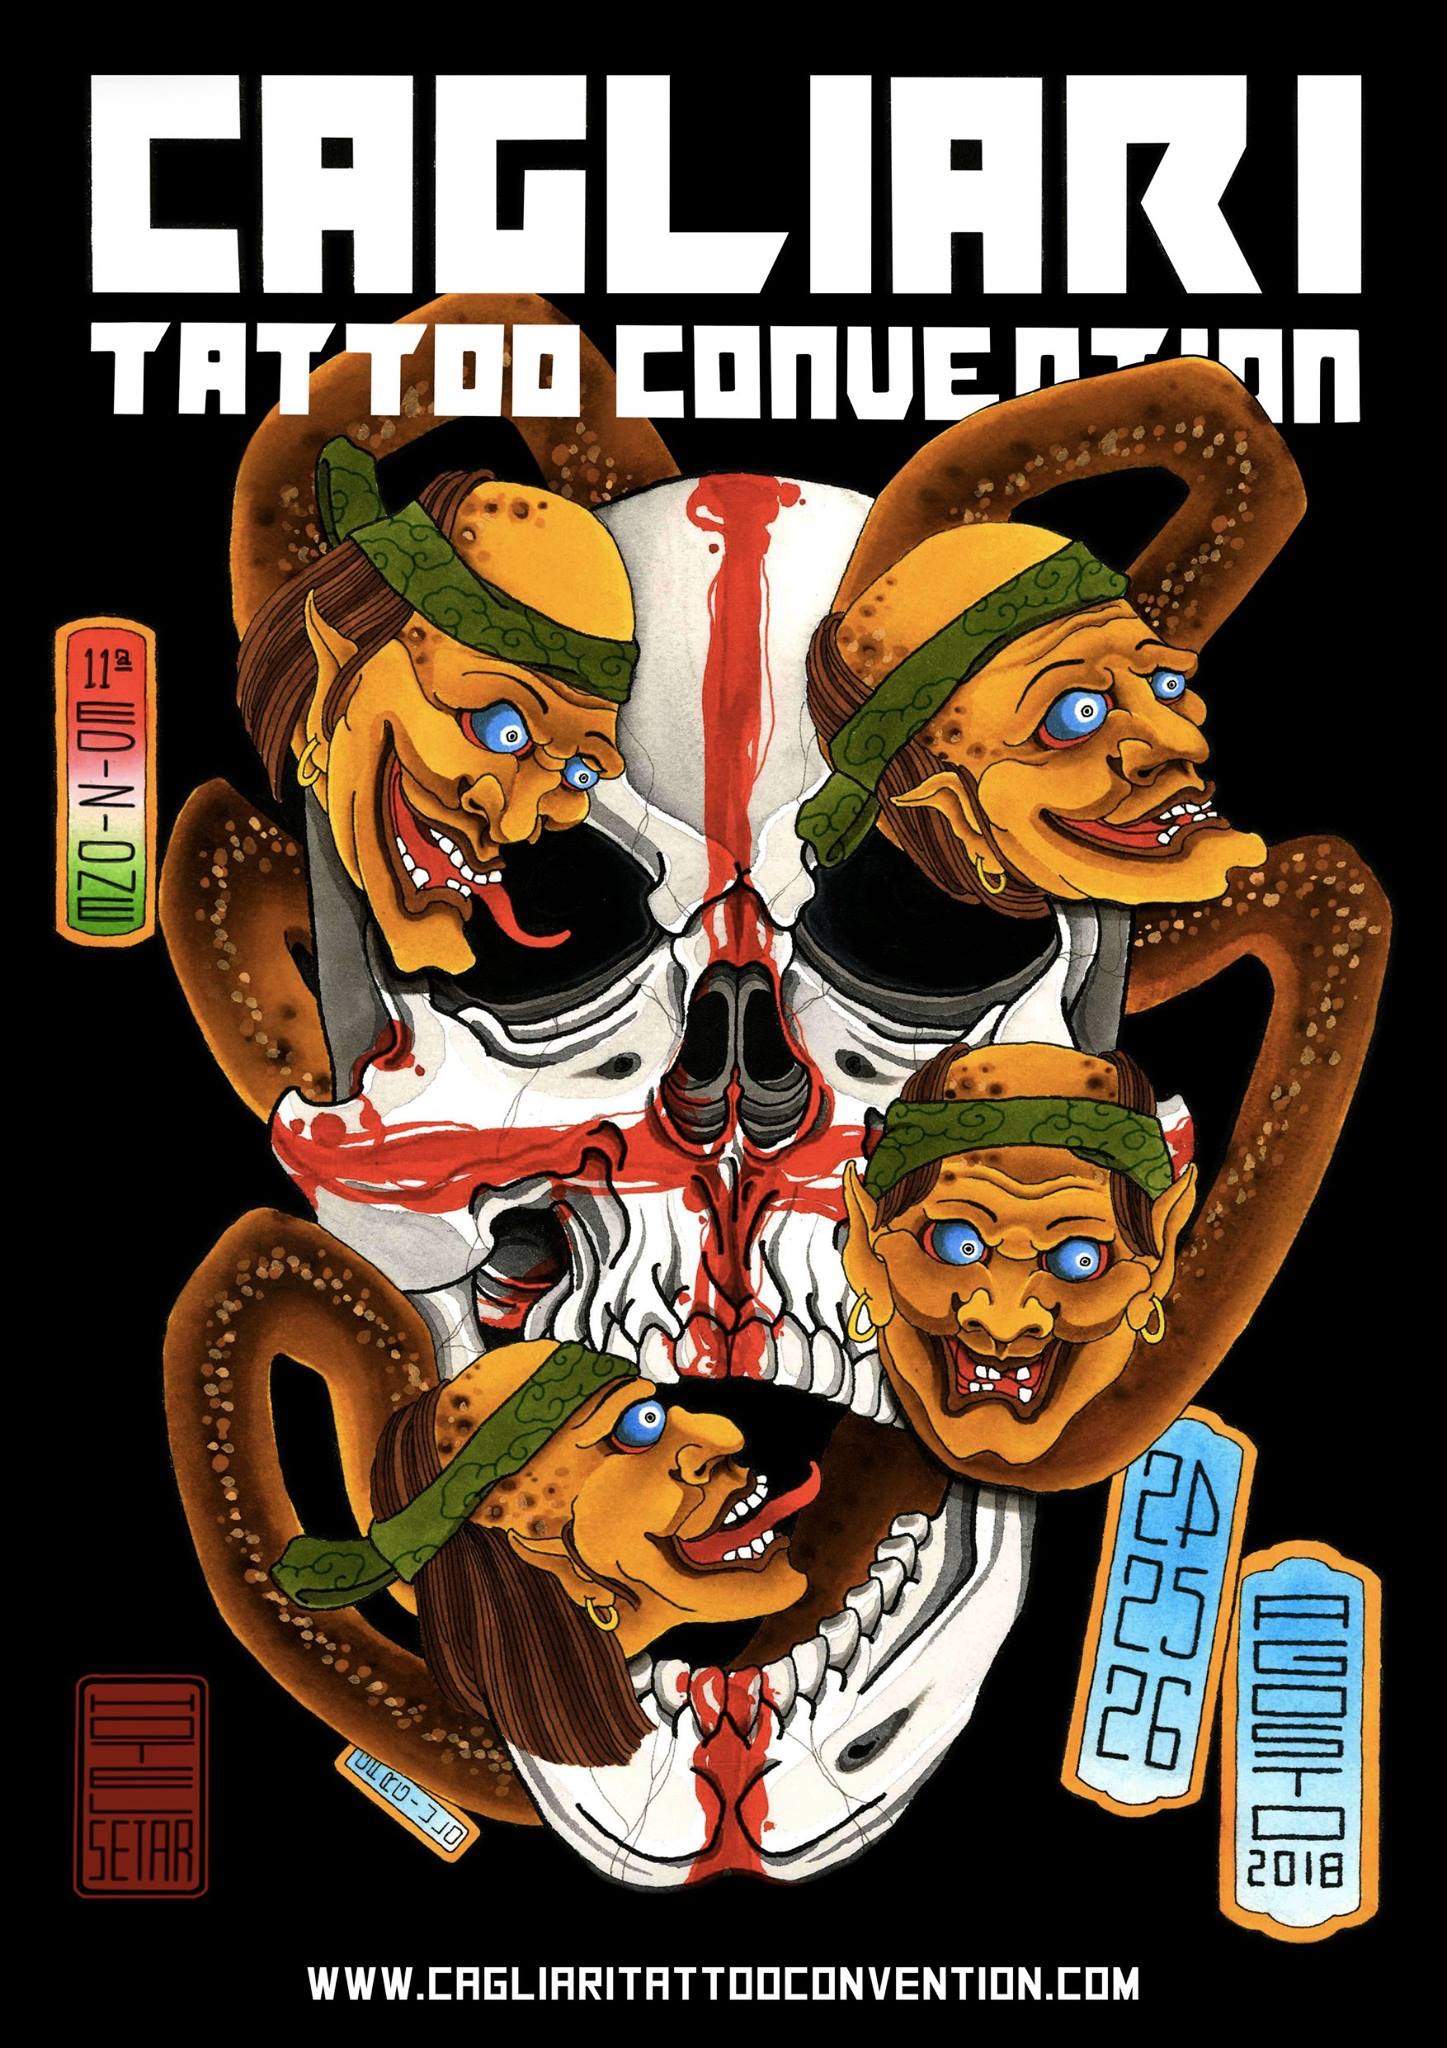 Cagliari Tattoo Convention